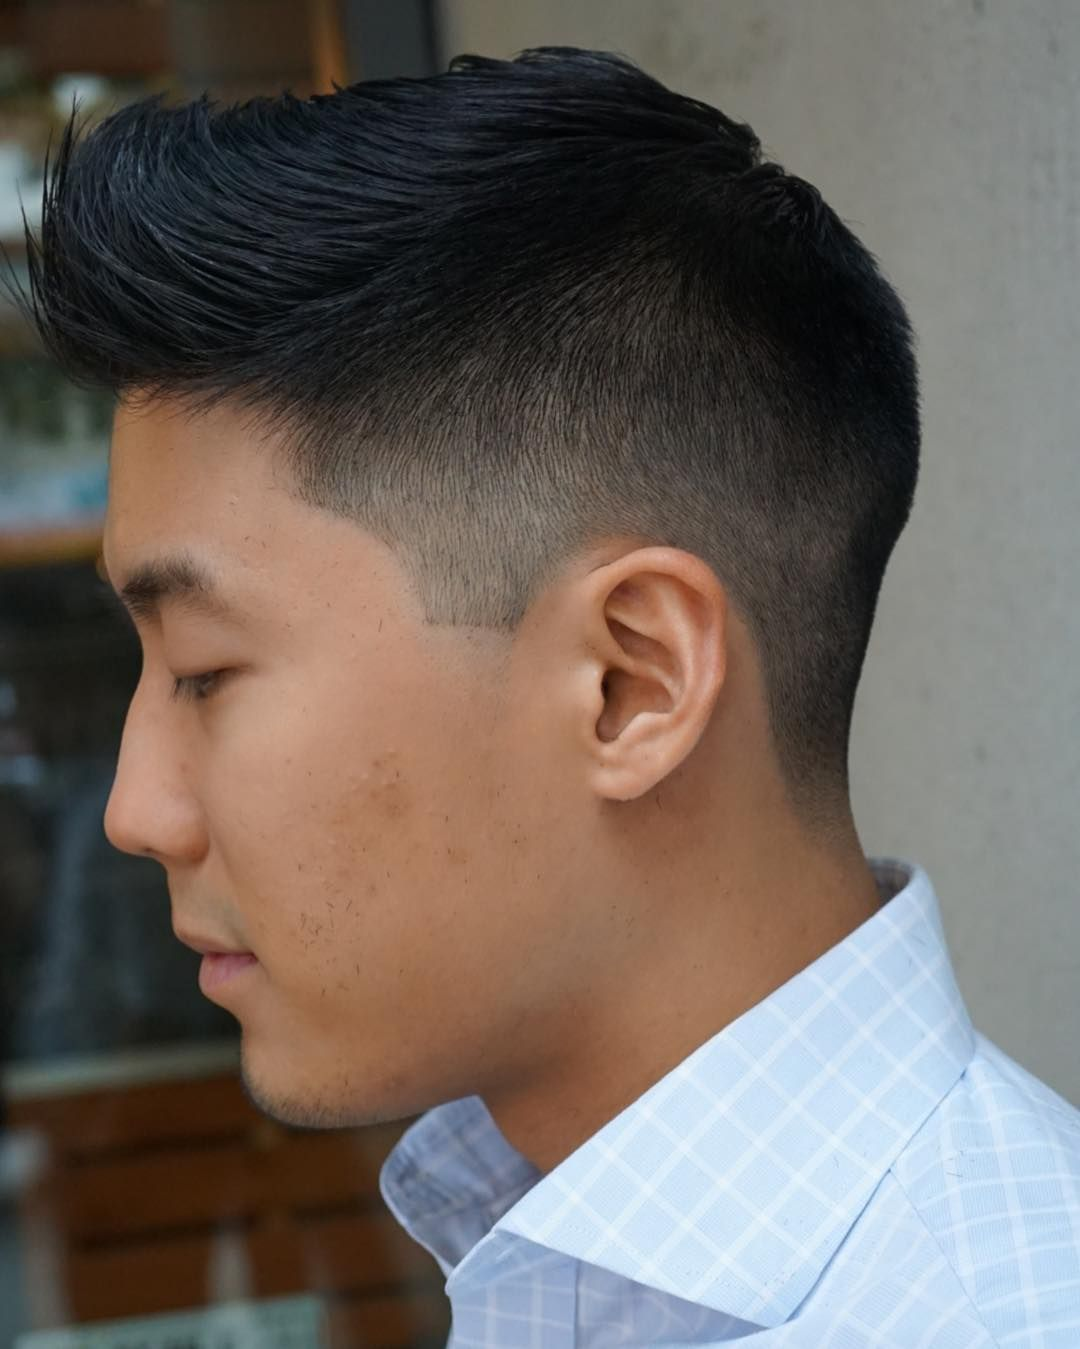 Low Fade Comb Over Korean Boy Hairstyle 2019